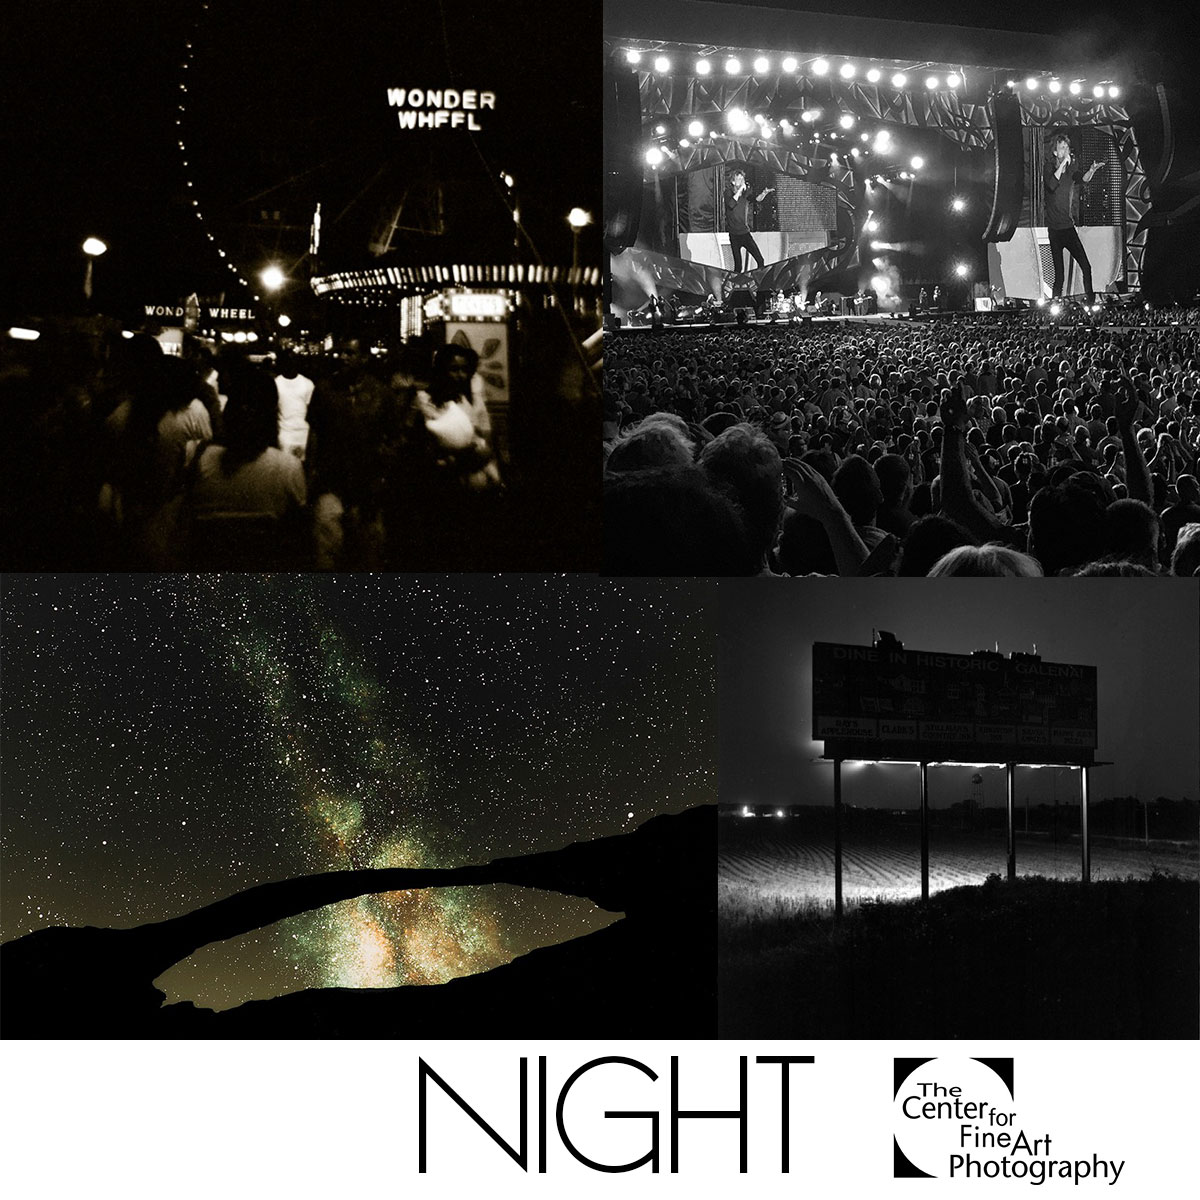 NIGHT with Juror Sean Corcoran | International Photographic Call for Entries - logo